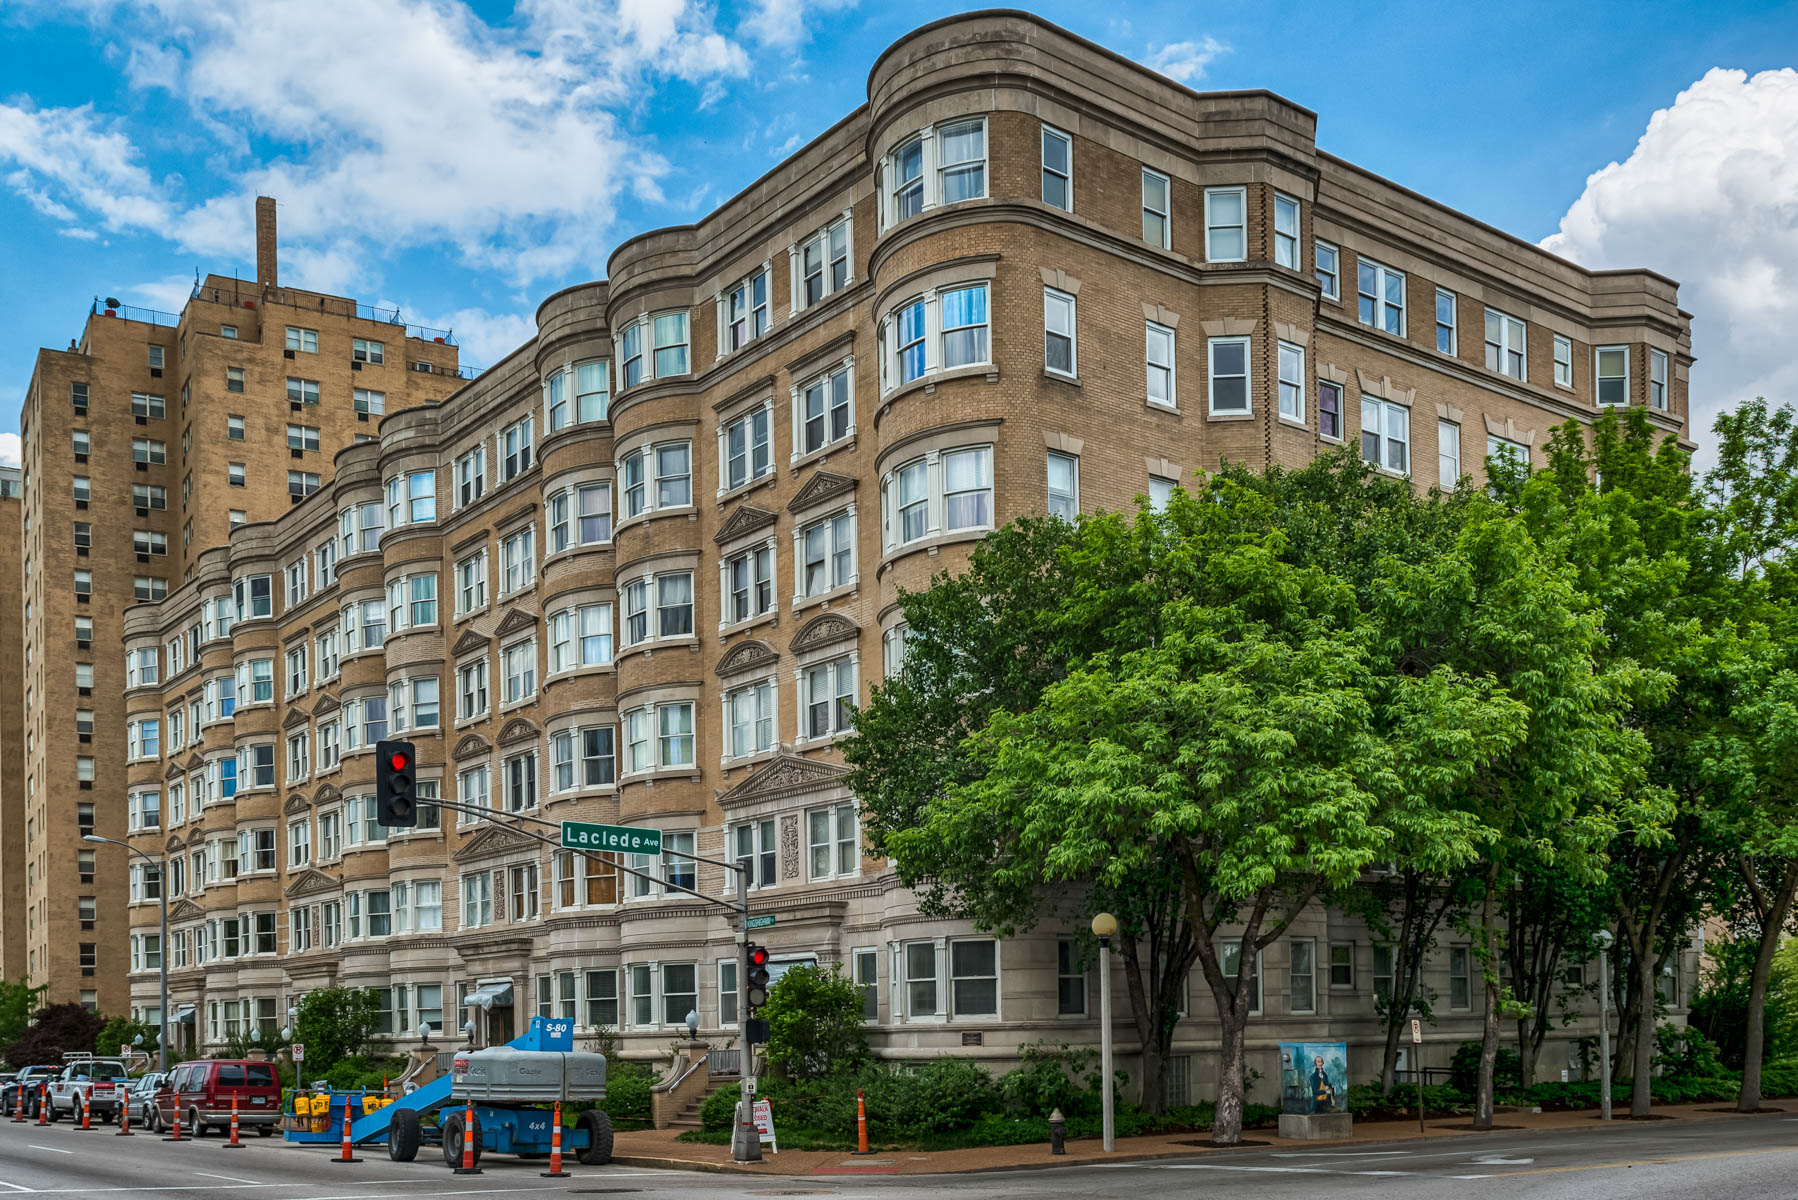 Condominium for Sale at North Kingshighway 4 N Kingshighway #9D St. Louis, Missouri 63108 United States